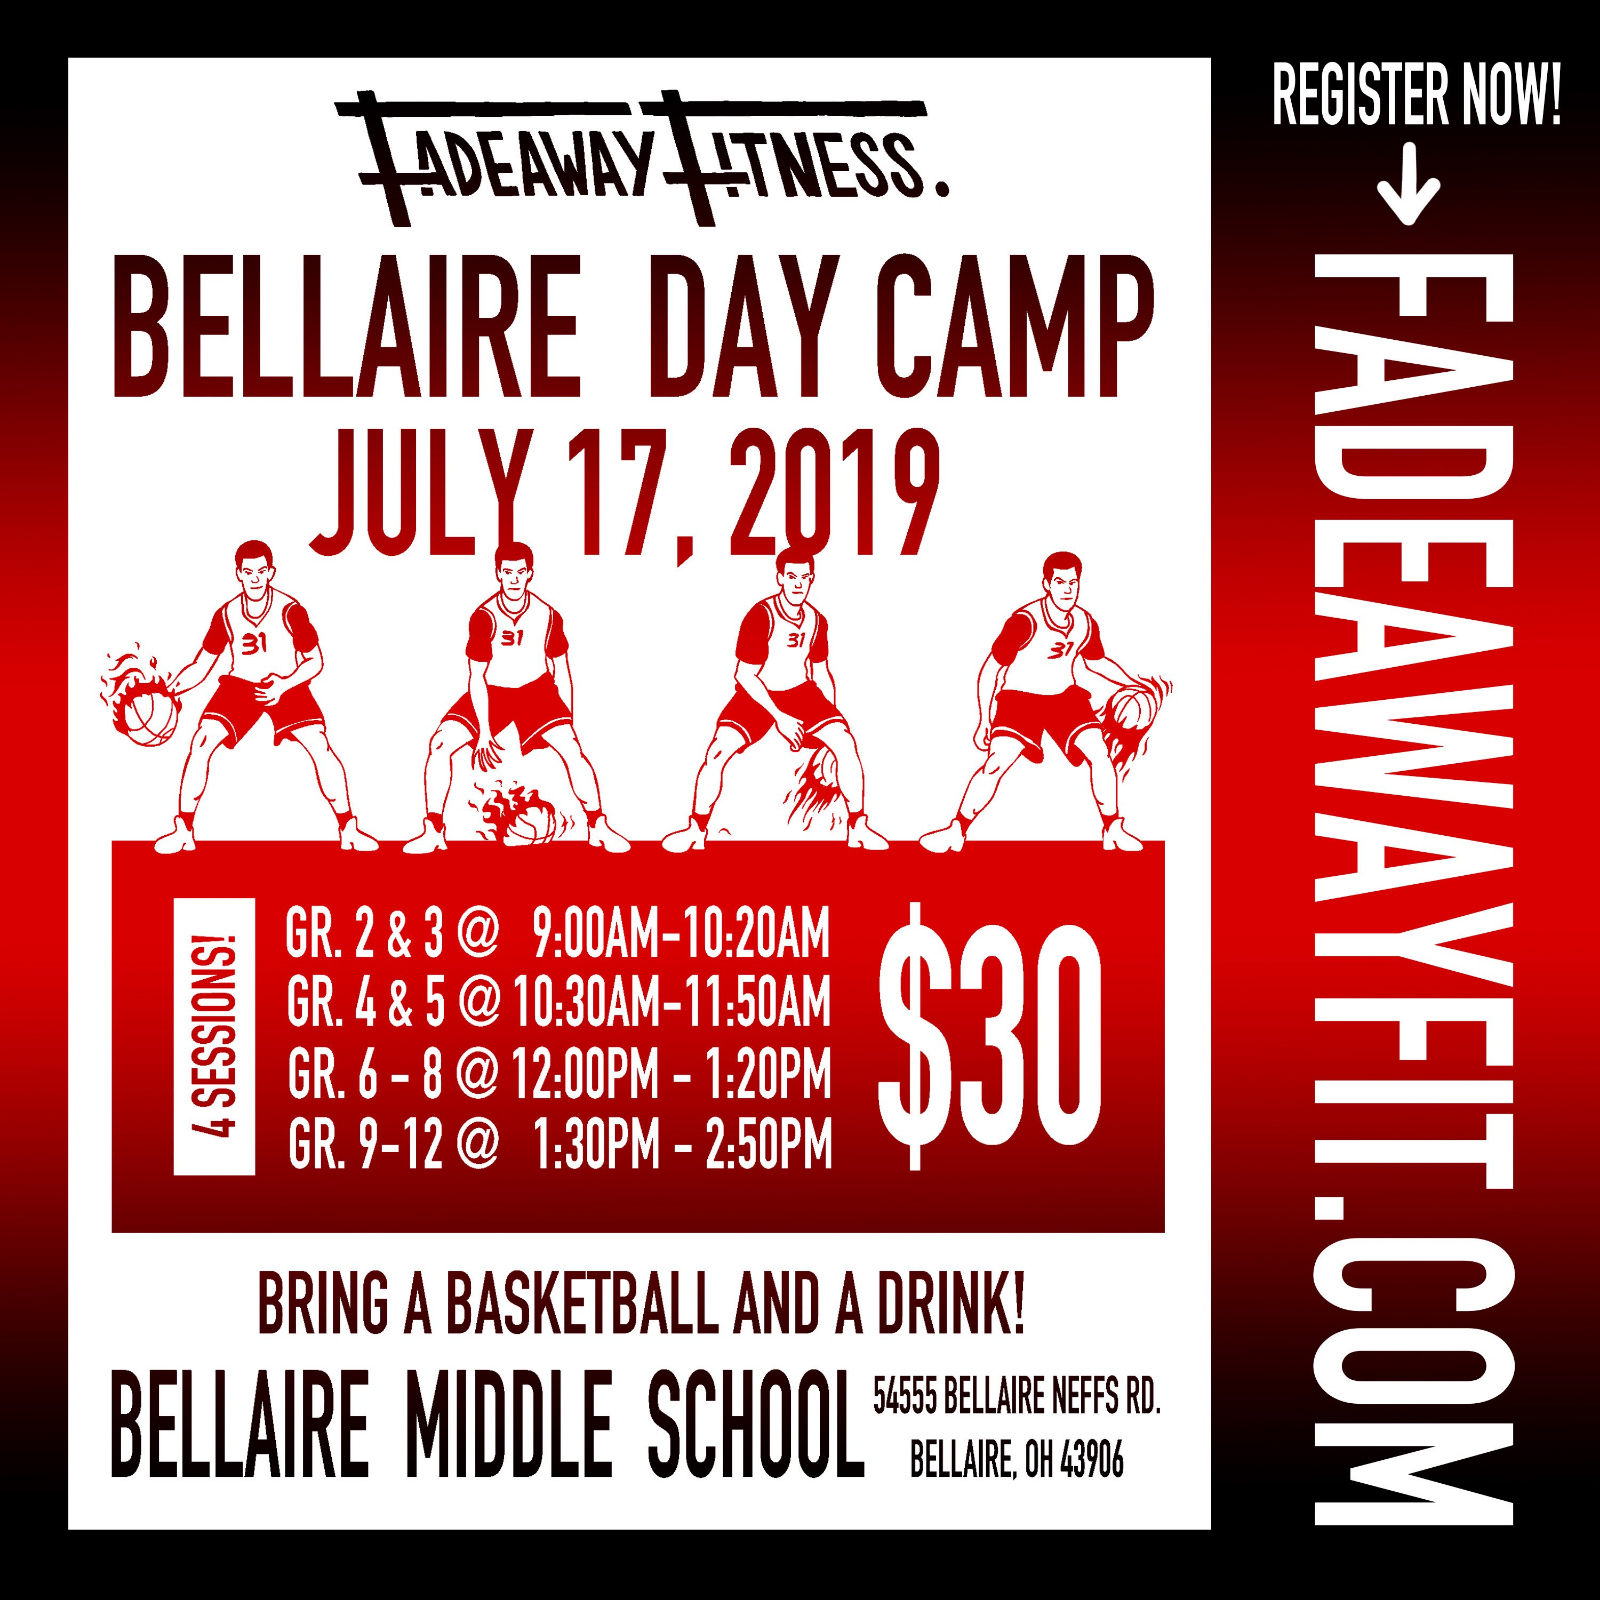 Reminder Fadeaway Fitness Basketball Day Camp to be held Wednesday at Bellaire Middle School